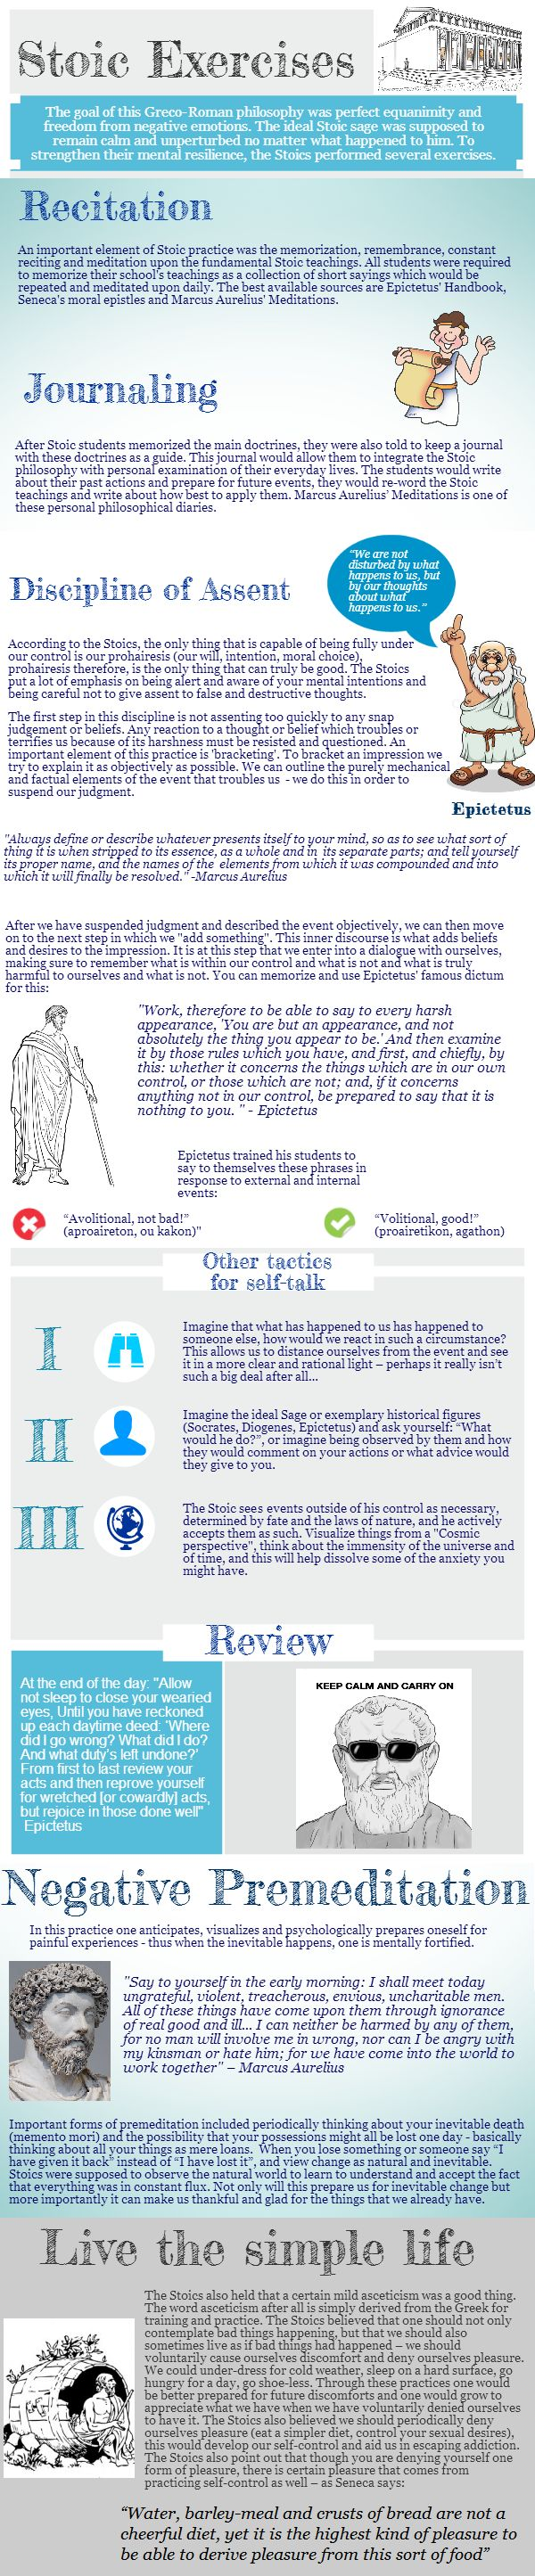 Stoic exercises info-graphic